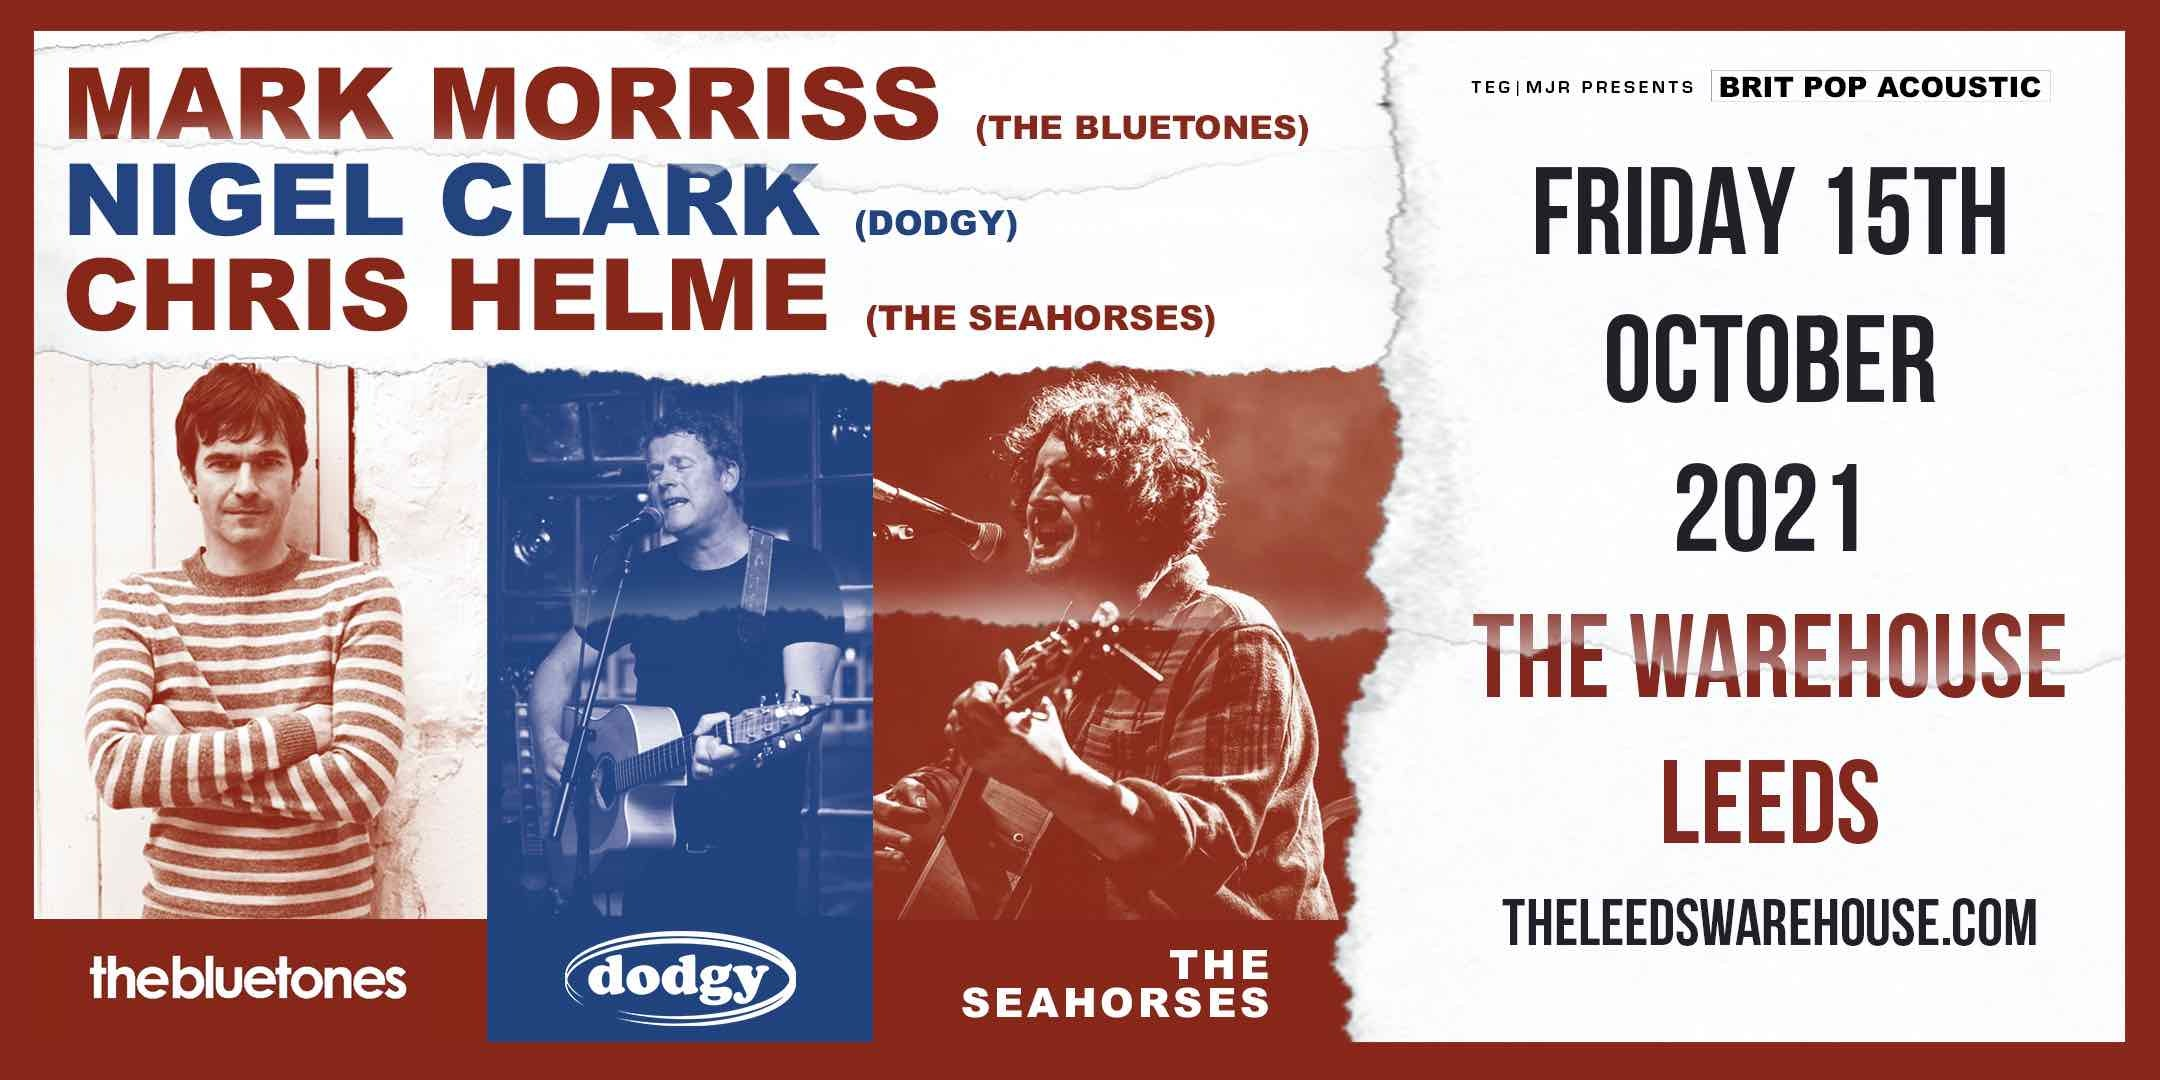 Britpop Acoustic: Mark Morriss (The Bluetones), Nigel Clarke (Dodgy) & Chris Helme (The Seahorses) – Live